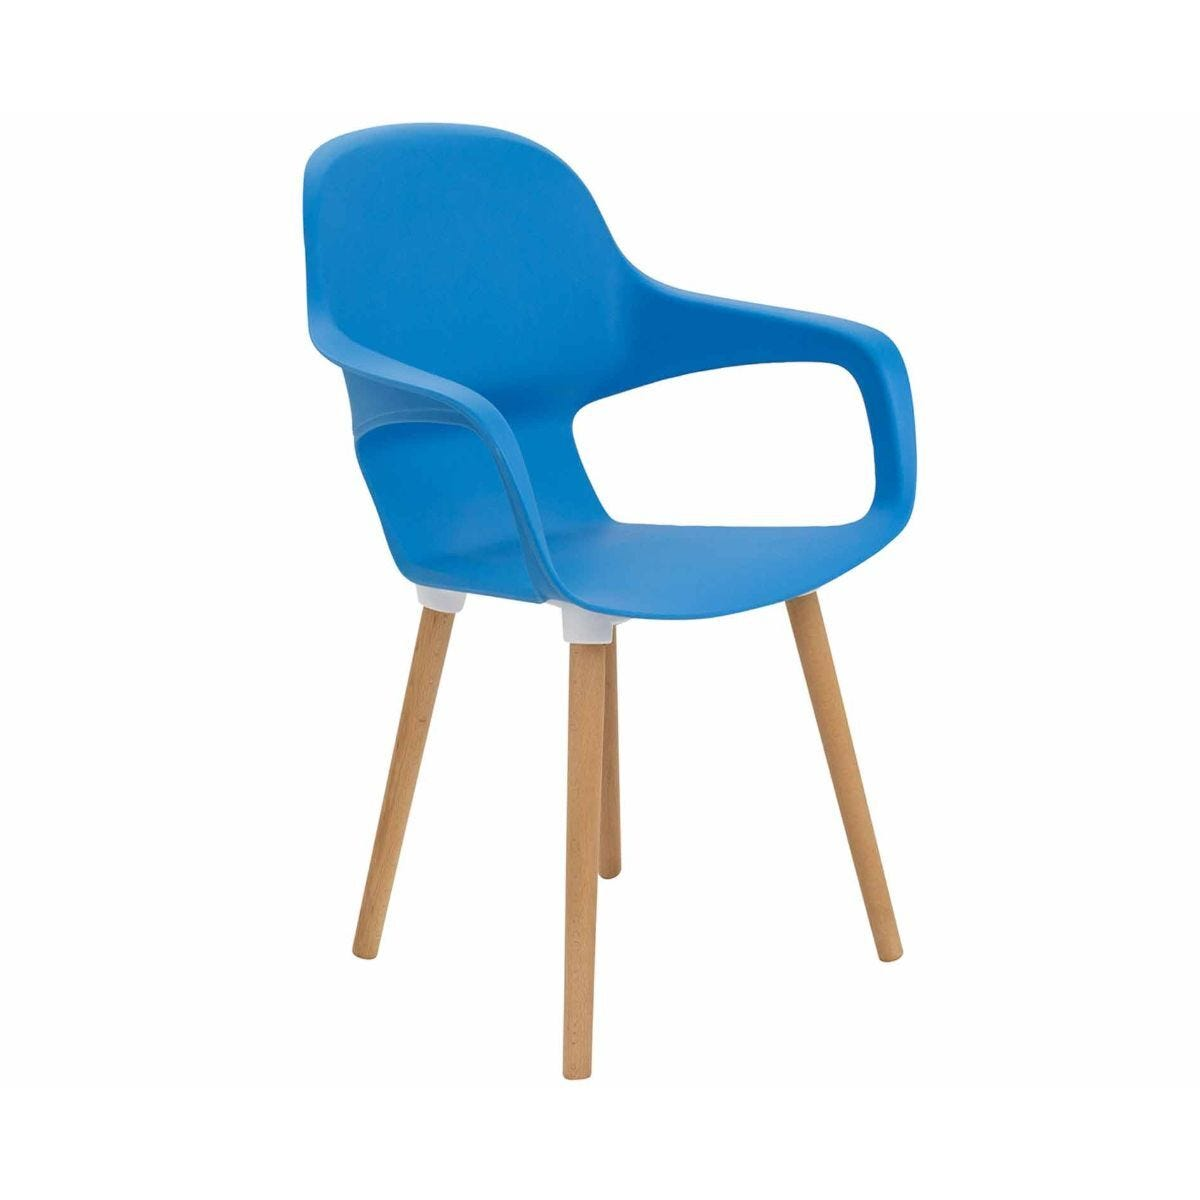 TC Office Ariel 2 Retro Chair with Wooden Round Legs Blue